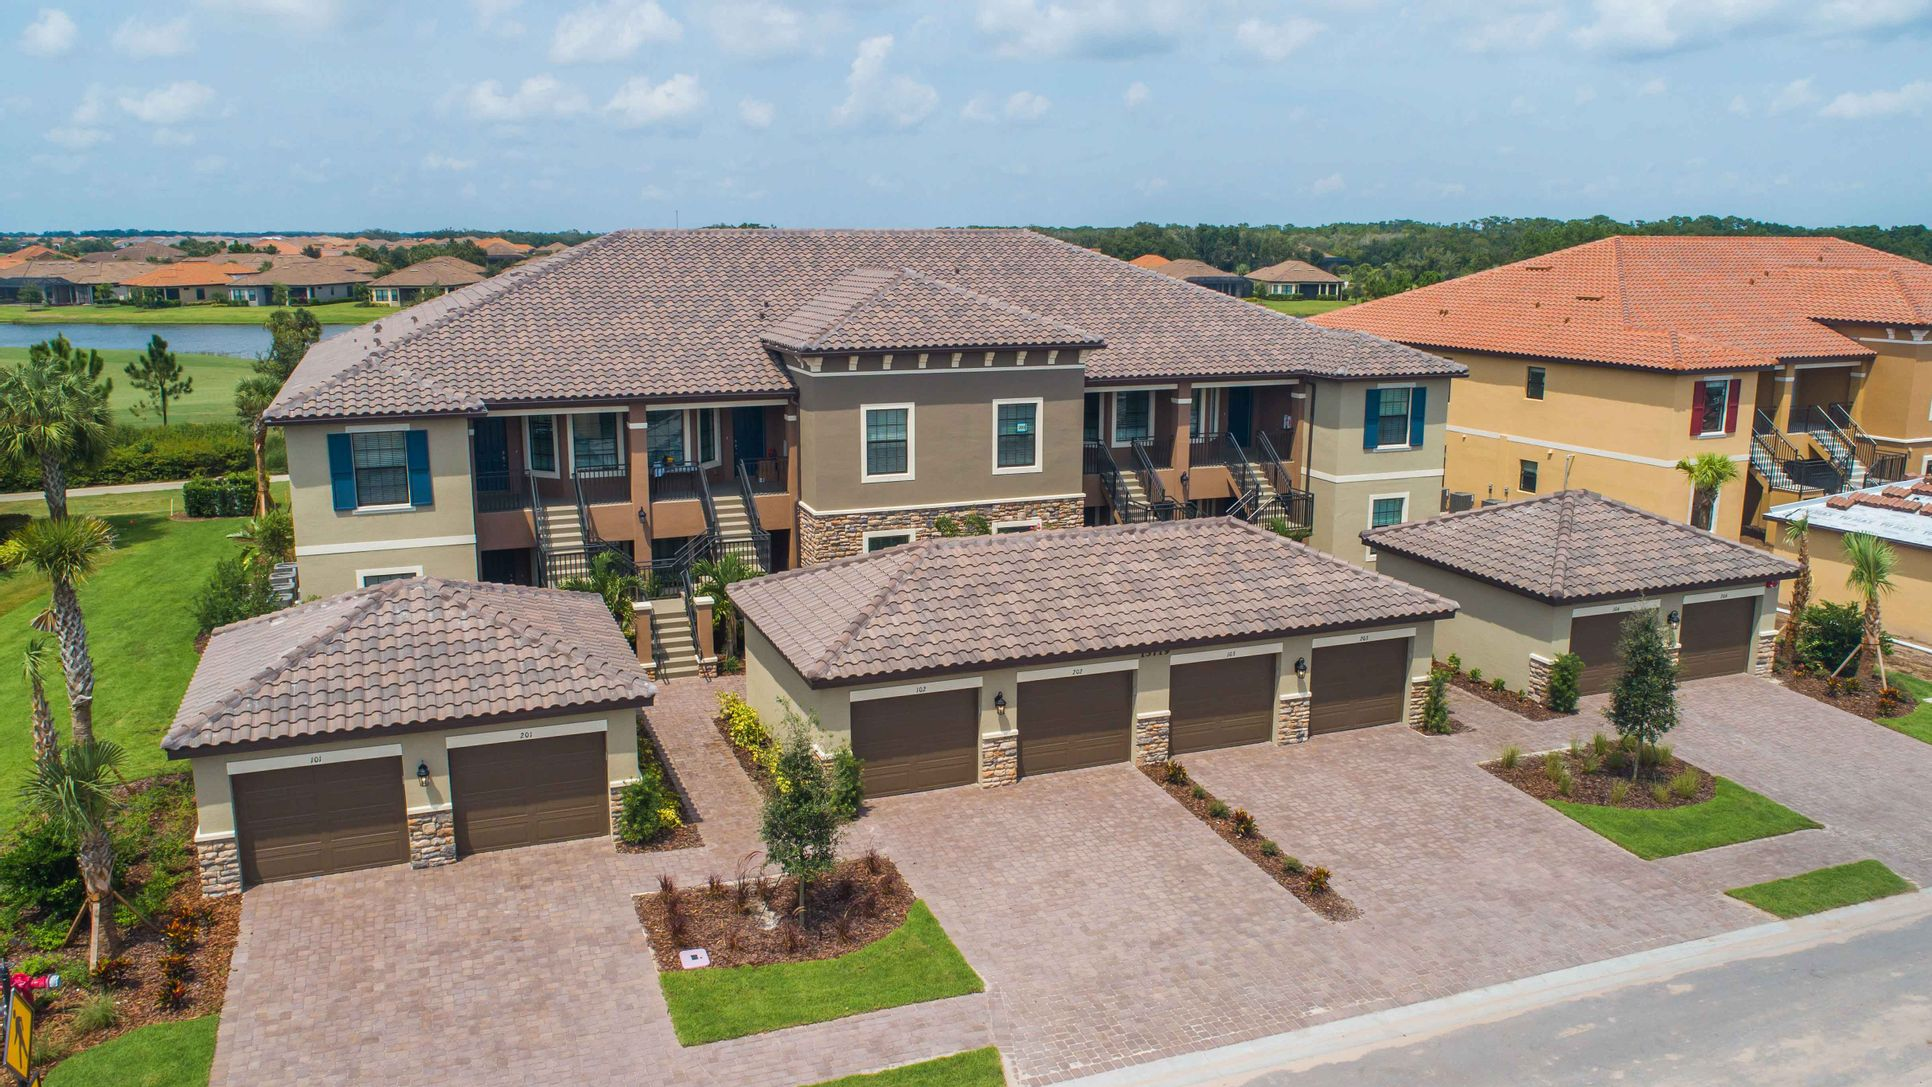 Lakewood Ranch Condo Exterior-16x9-13